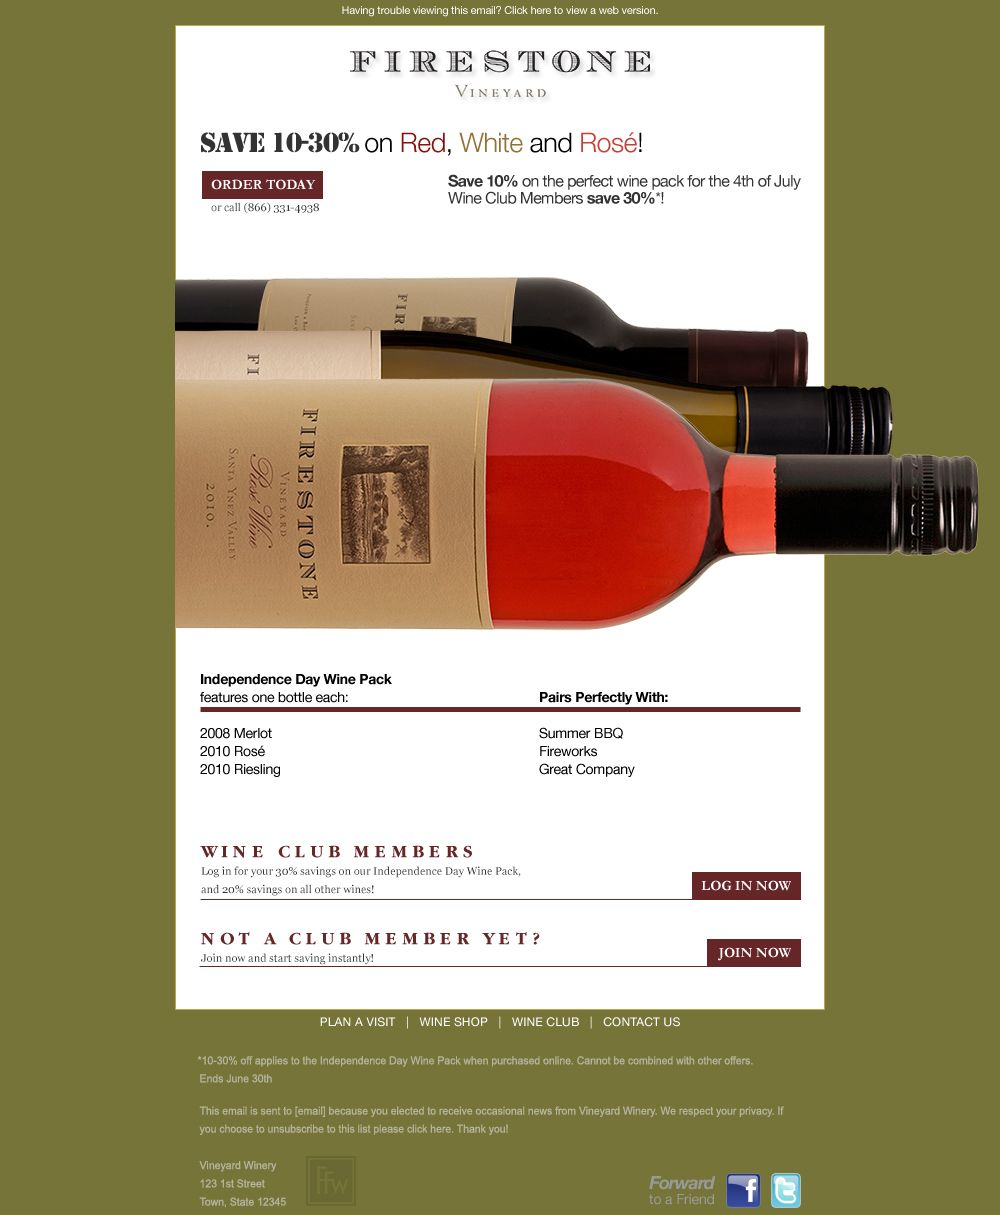 Us Free Ebook Winery Email Marketing Top Free Ebooks